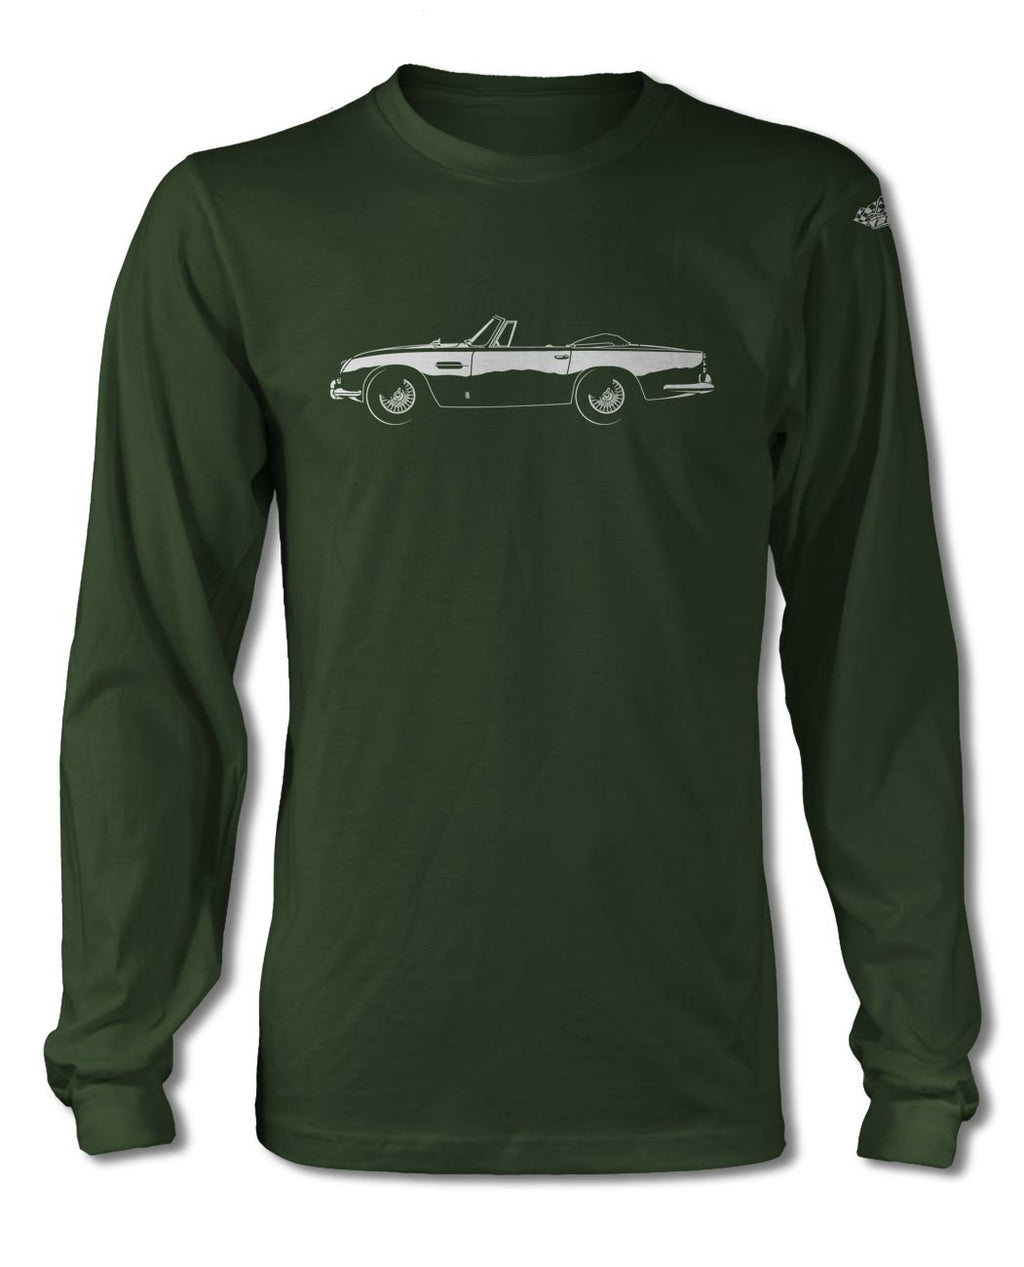 Aston Martin DB5 Convertible T-Shirt - Long Sleeves - Side View